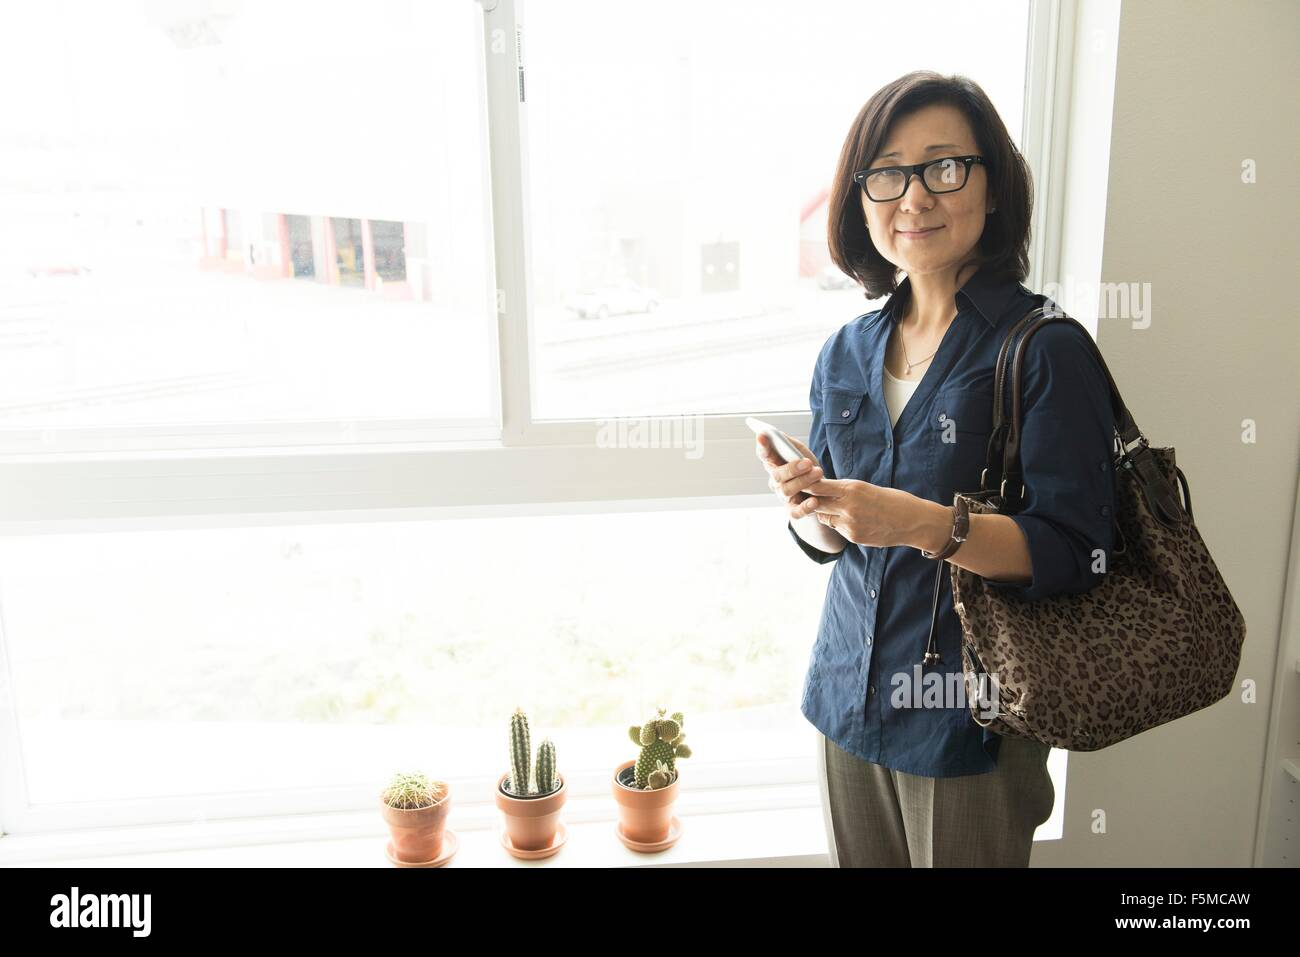 Mature woman standing in front of window holding smartphone looking at camera smiling - Stock Image